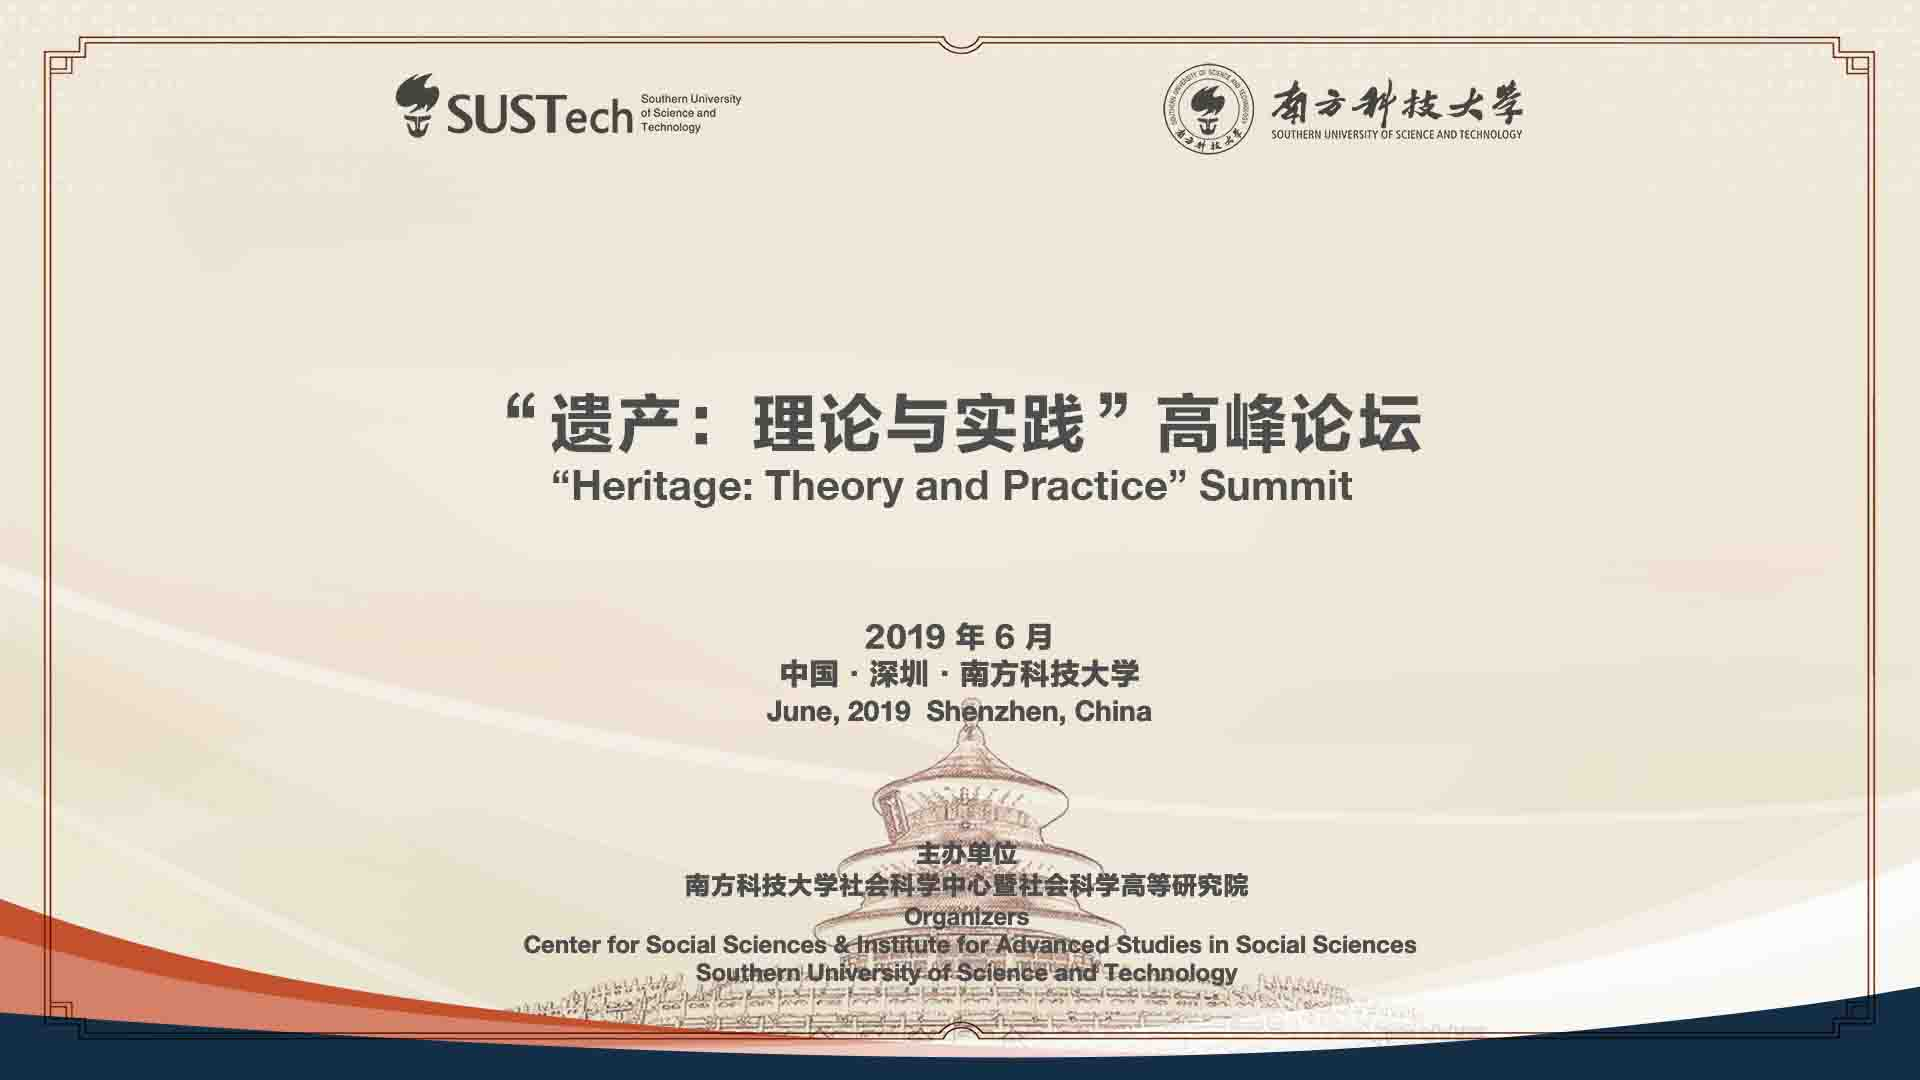 Institute for Advanced Studies in Social Sciences holds Heritage Forum